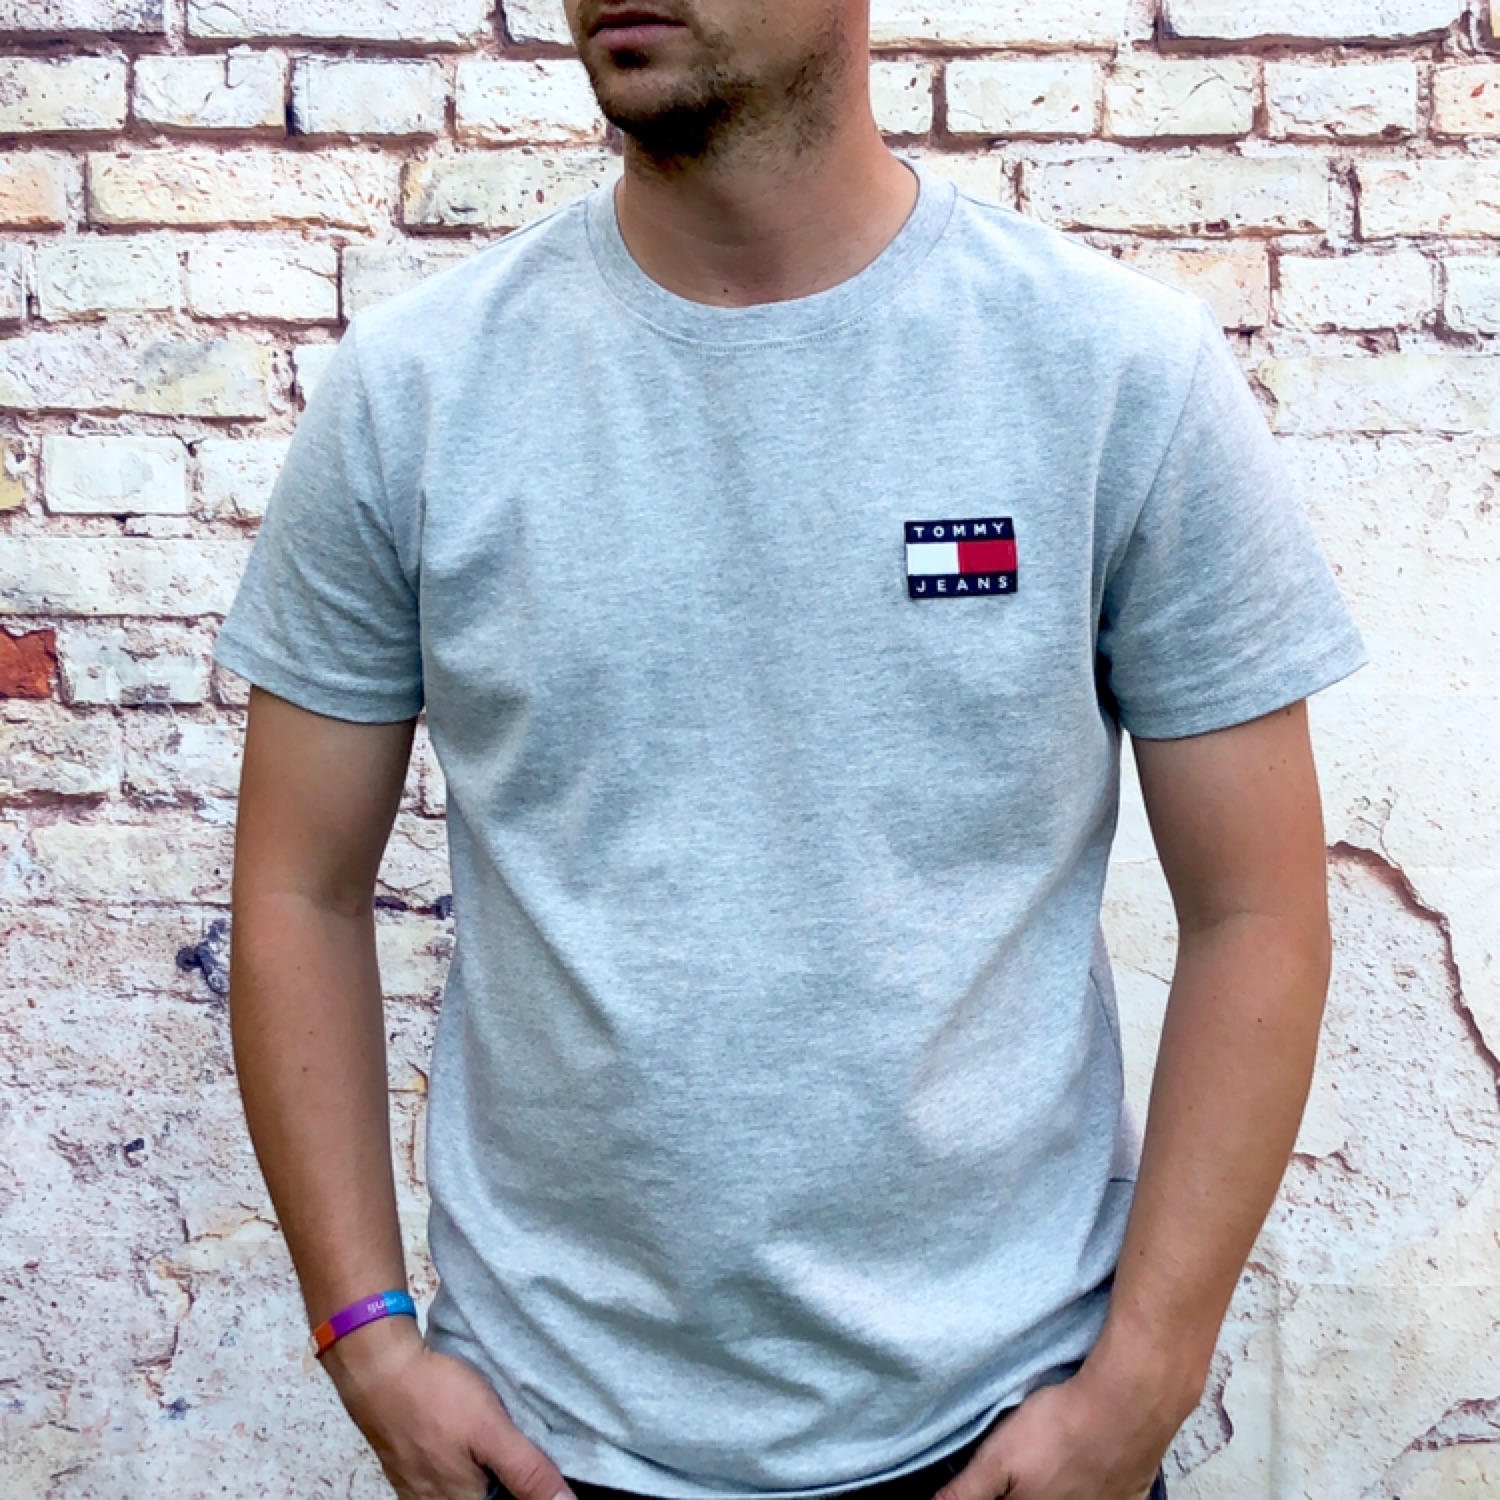 Brand New Grey Tommy Hilfiger Tee Shirt